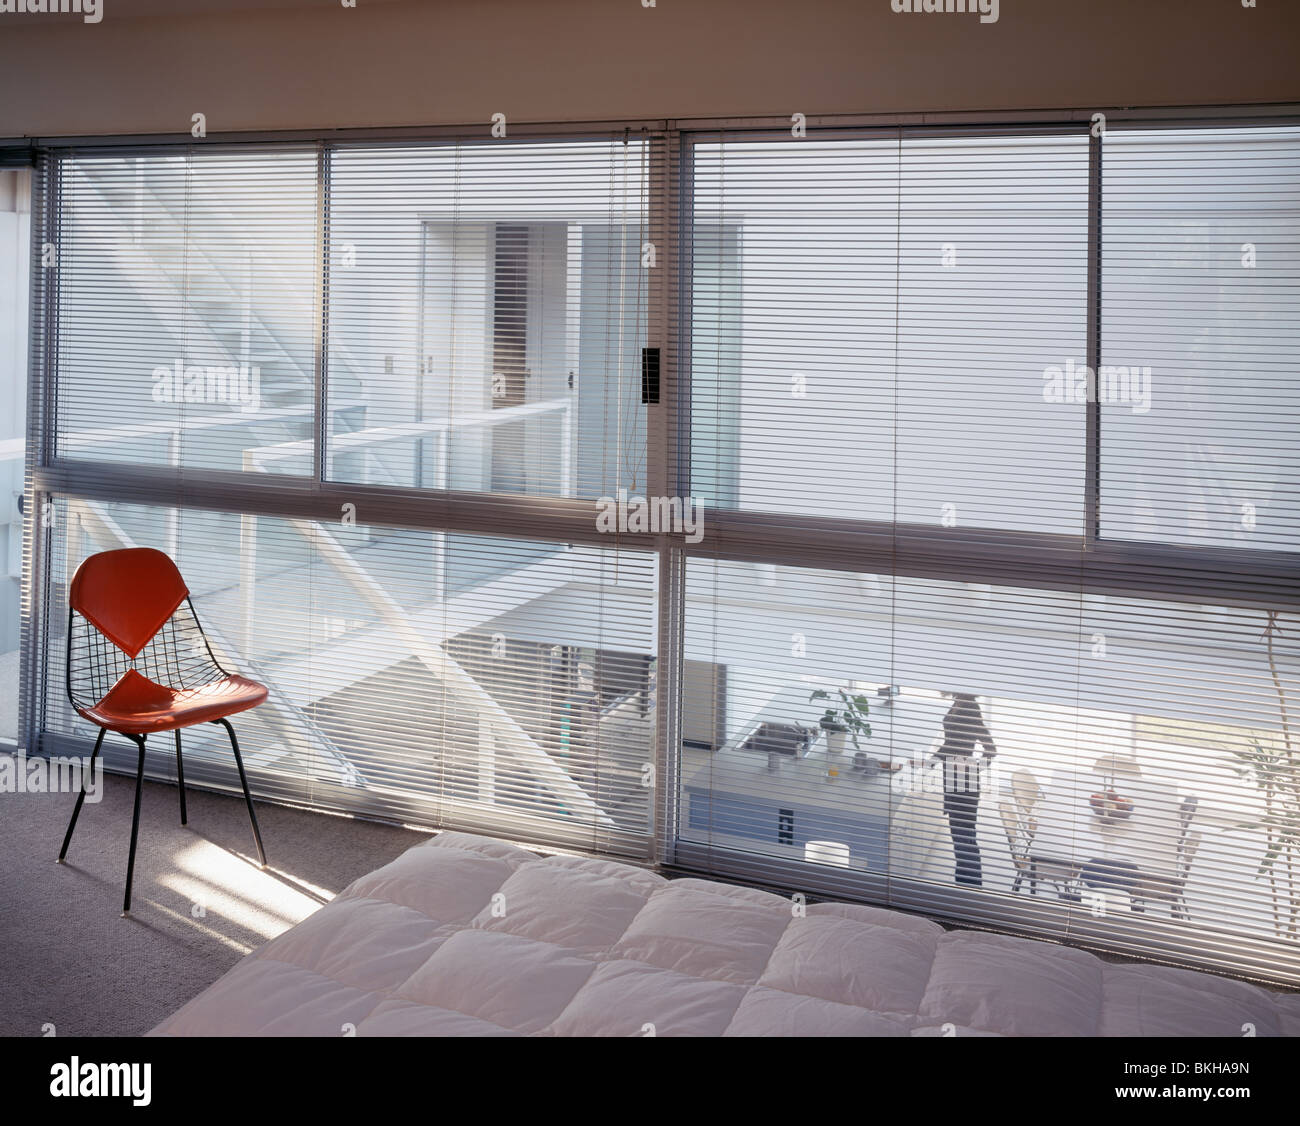 Miraculous Charles Eames Chair In Front Of Glass Wall With Blinds In Uwap Interior Chair Design Uwaporg